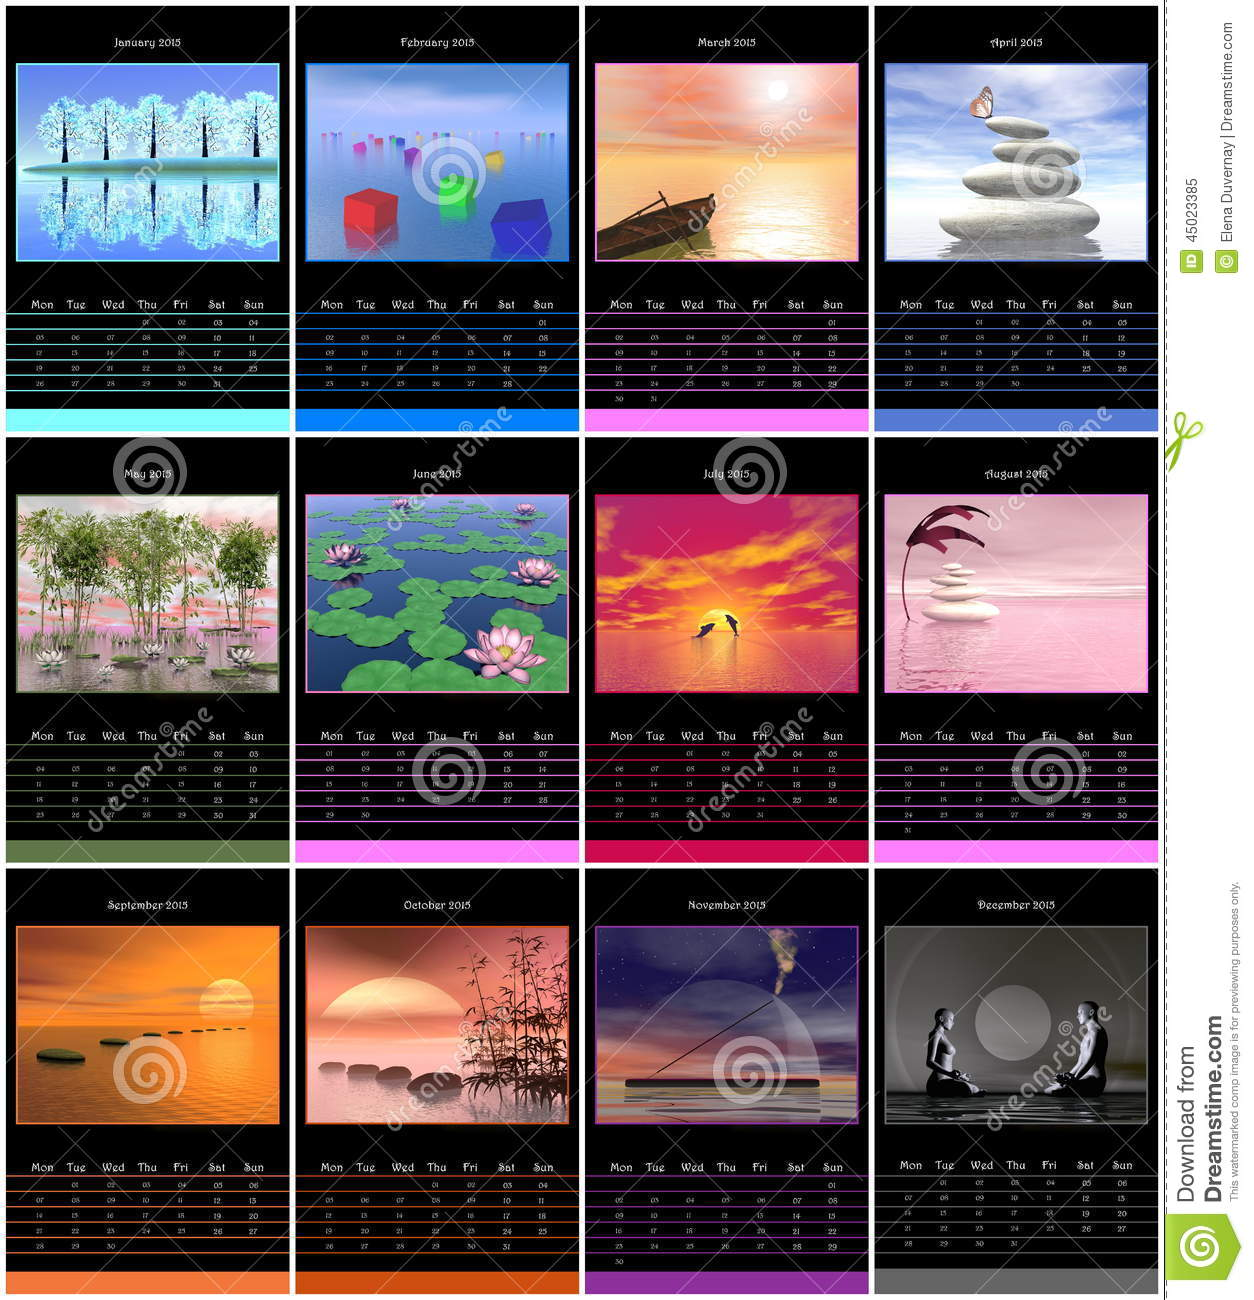 Year Calendar Starting : European year calendar with zen images stock